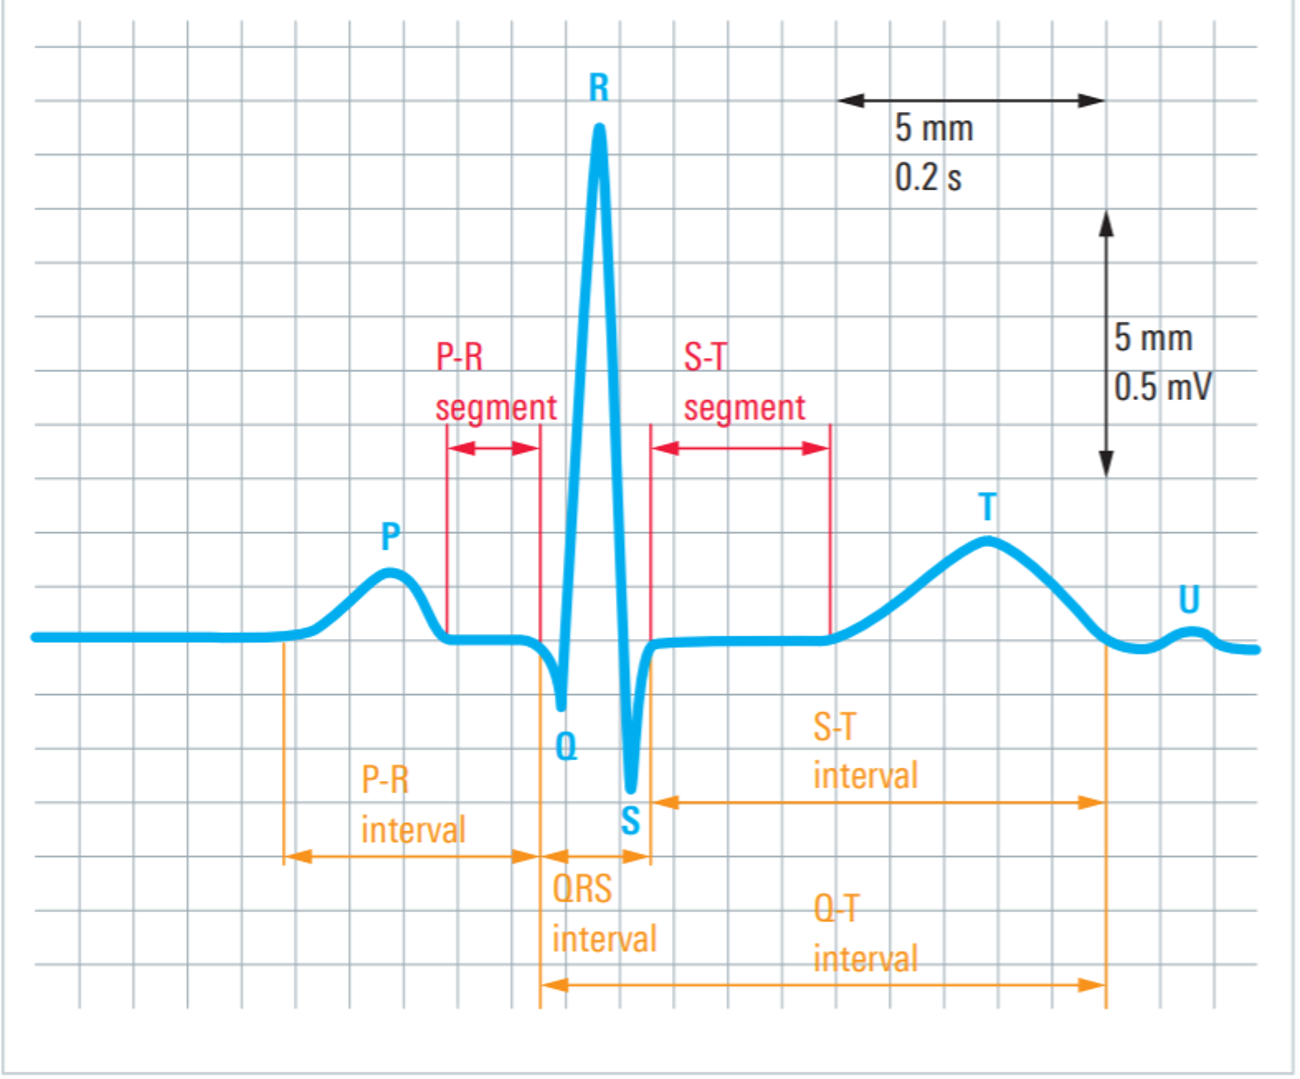 ECG signal from lead 1